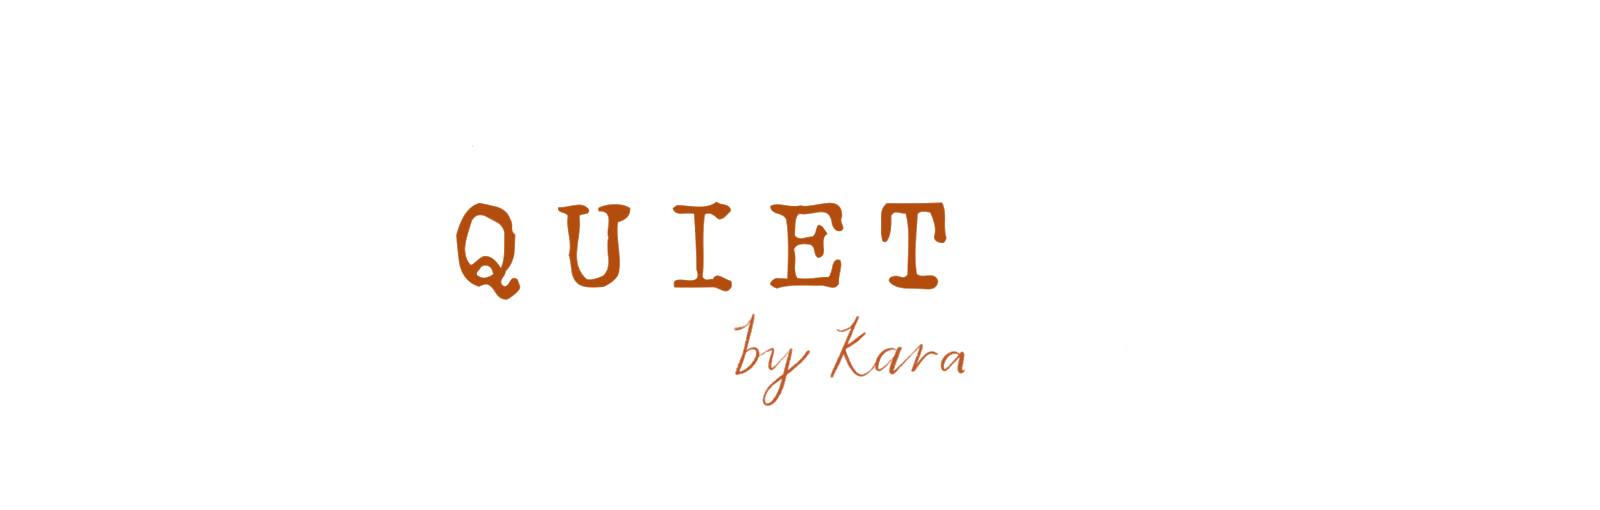 QUIET by Kara